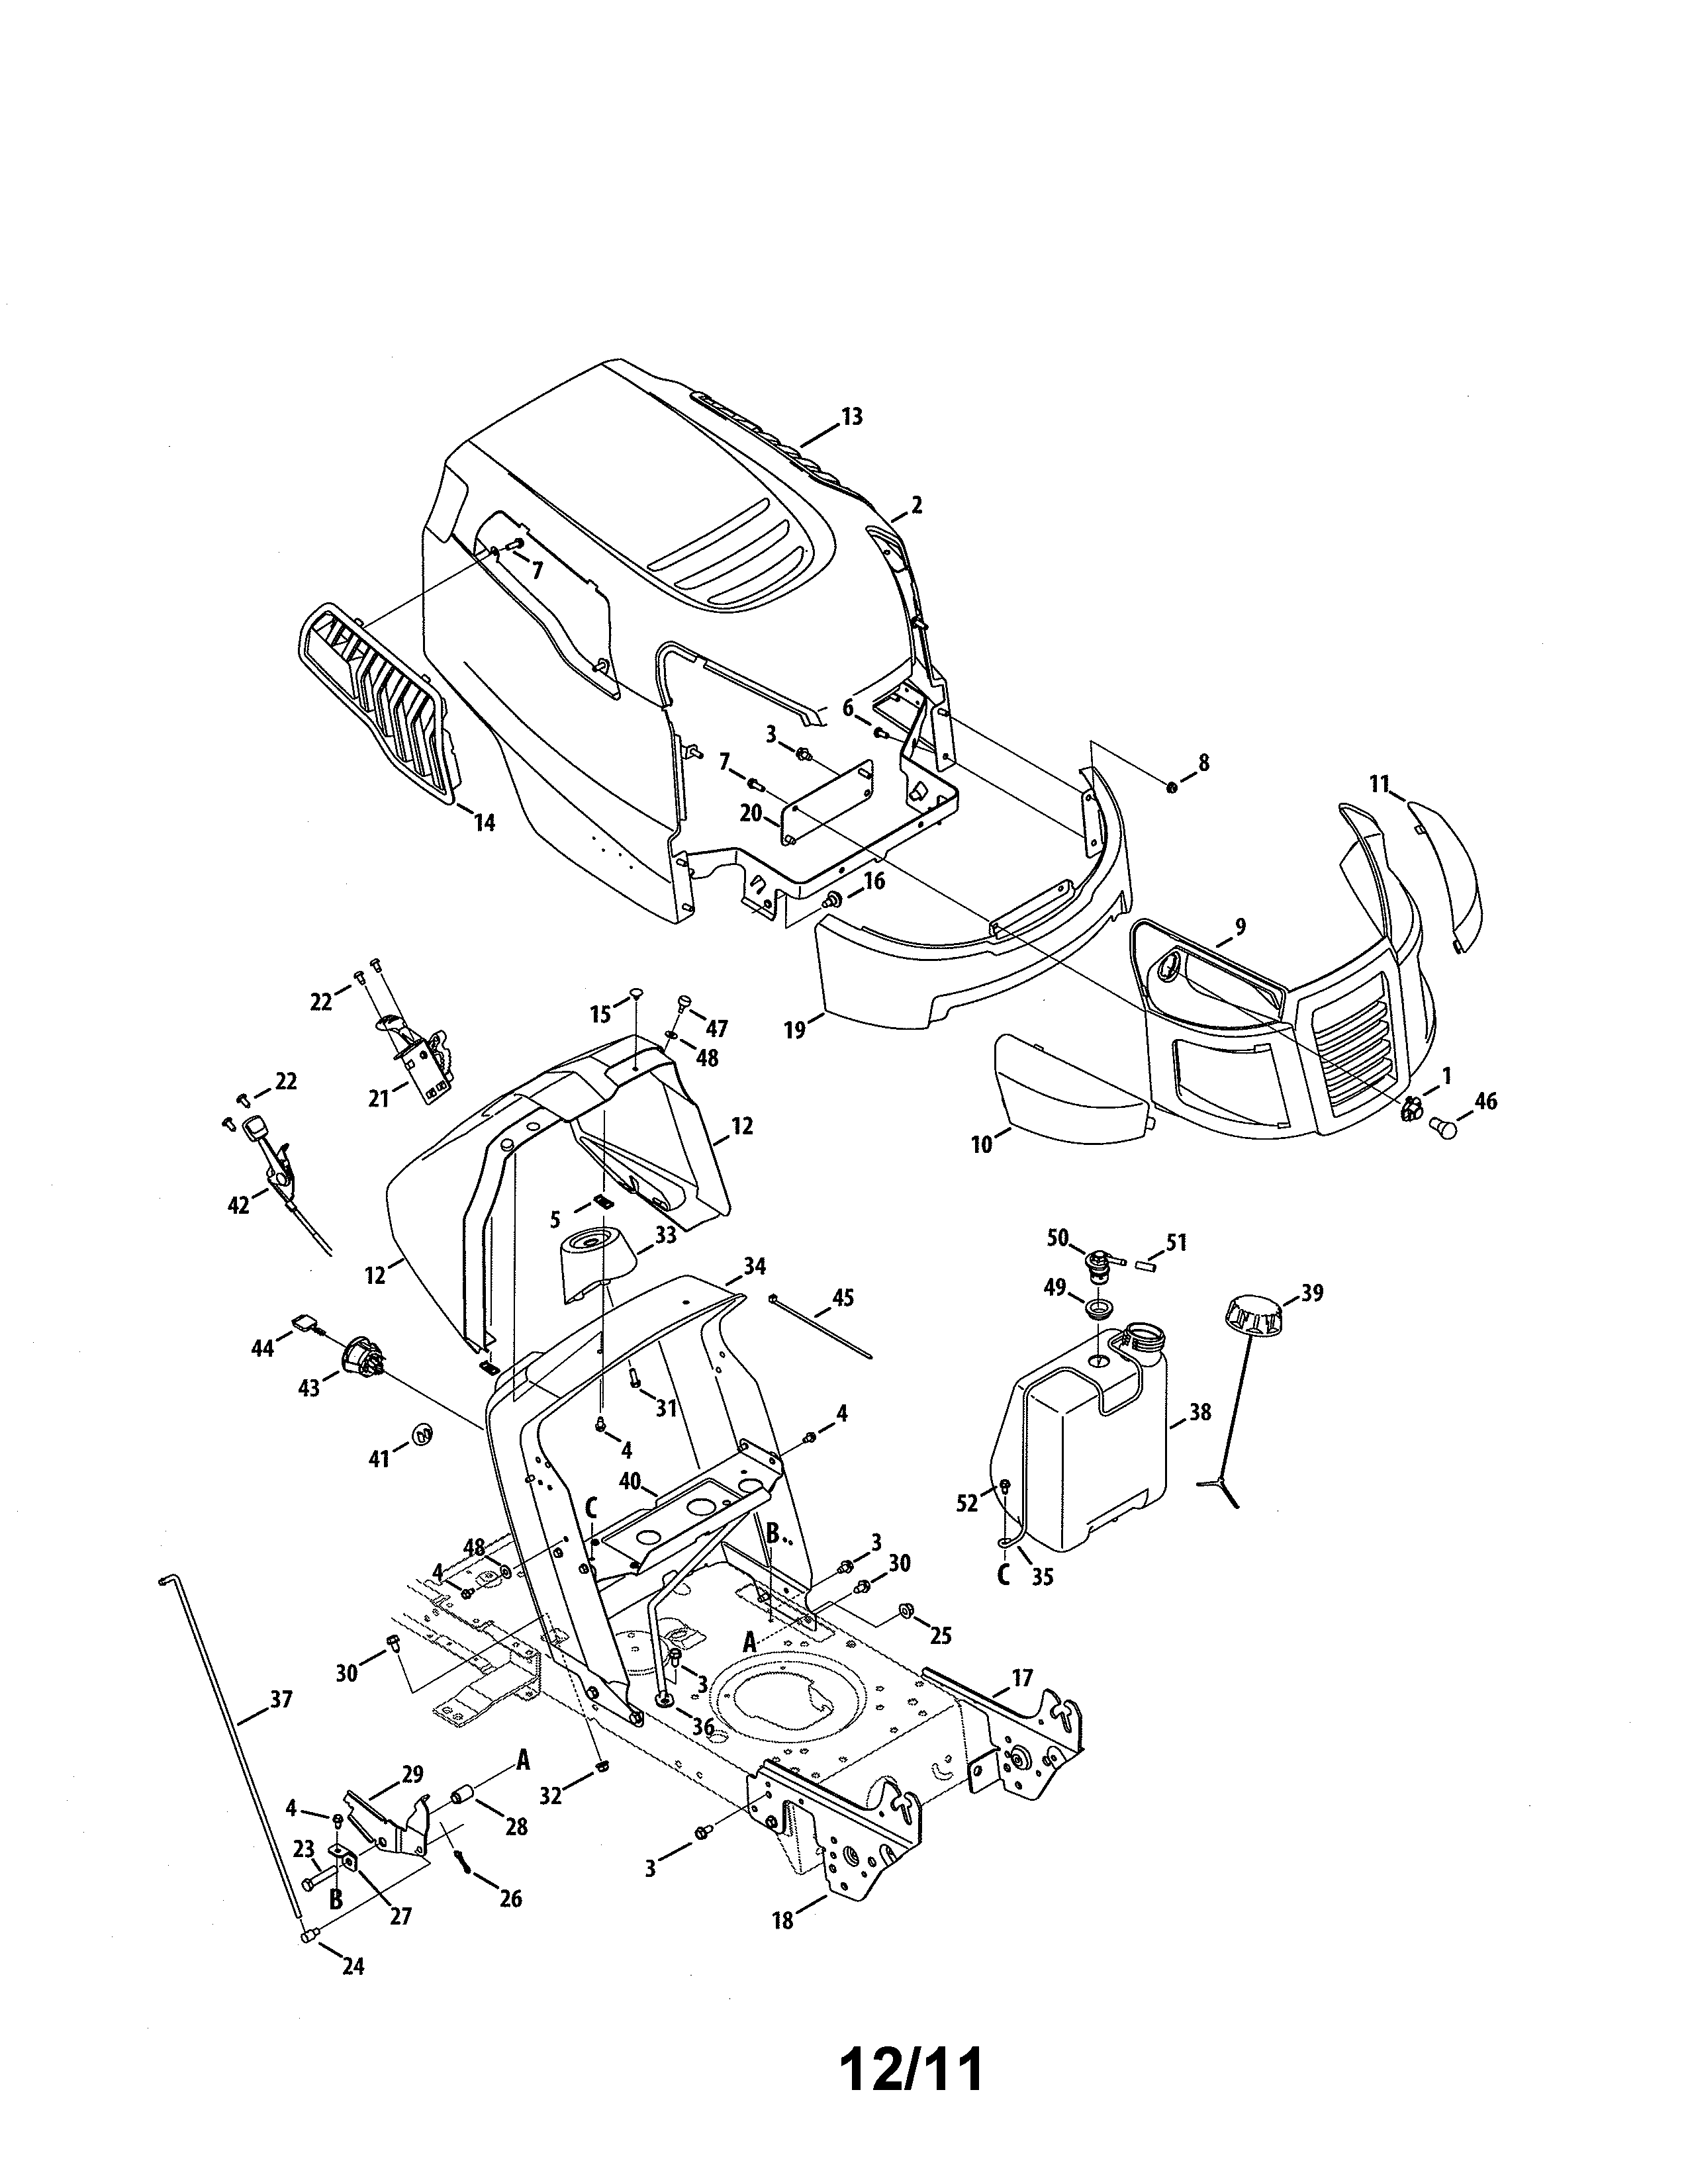 Craftsman Model 247288852 Lawn Tractor Genuine Parts Briggs And Stratton Engine Diagram List For